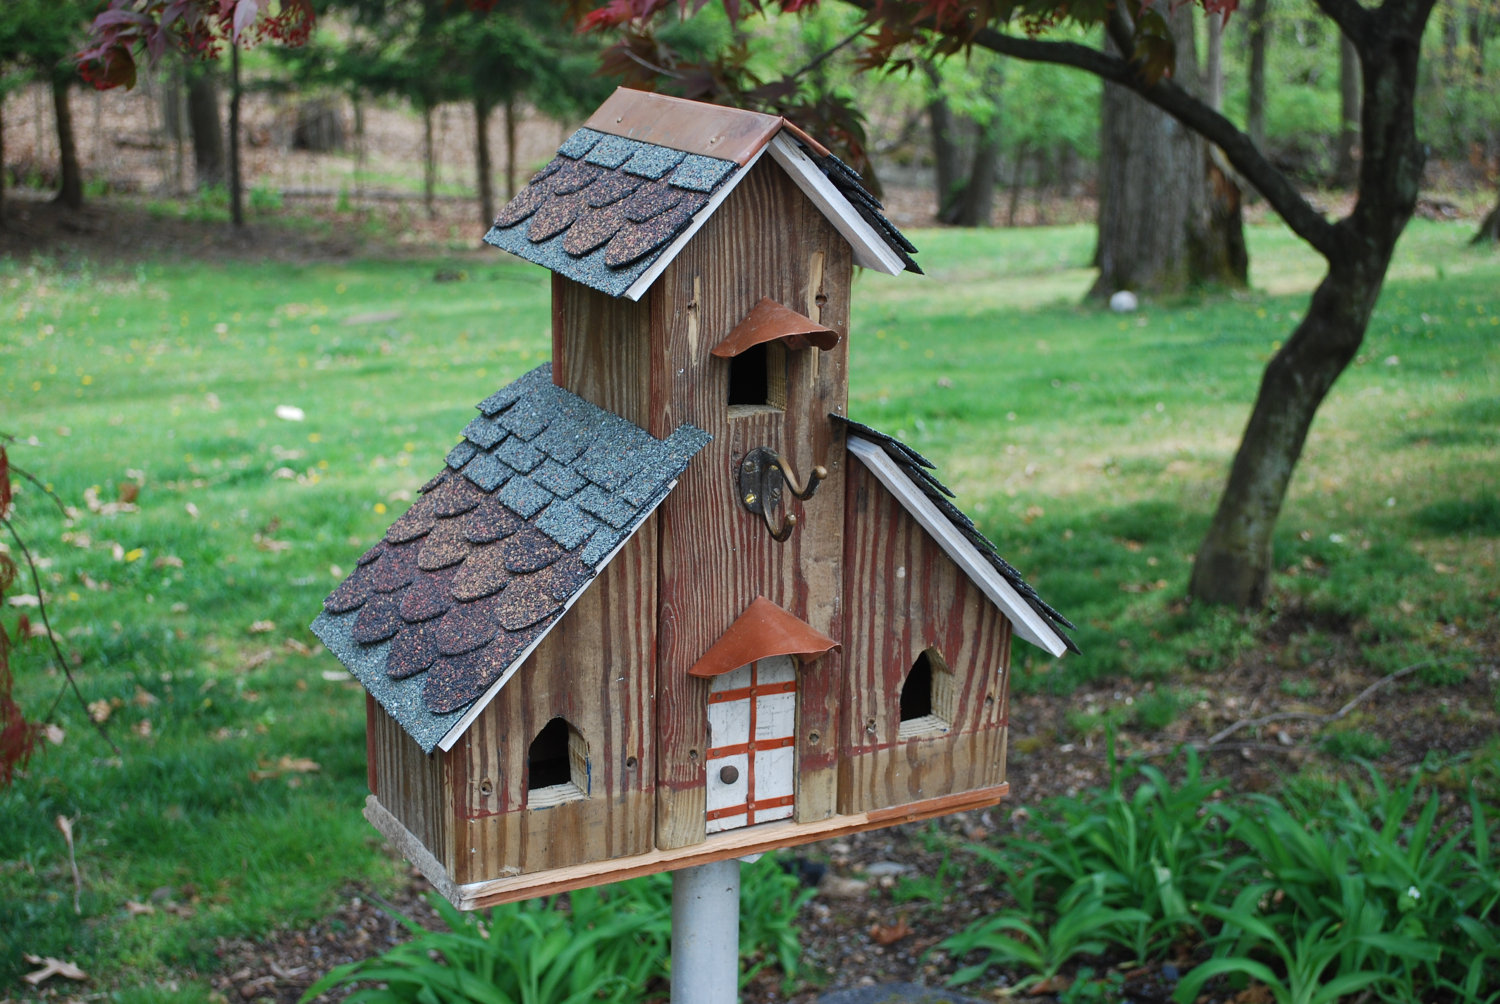 15 decorative and handmade wooden bird houses style for Types of birdhouses for birds